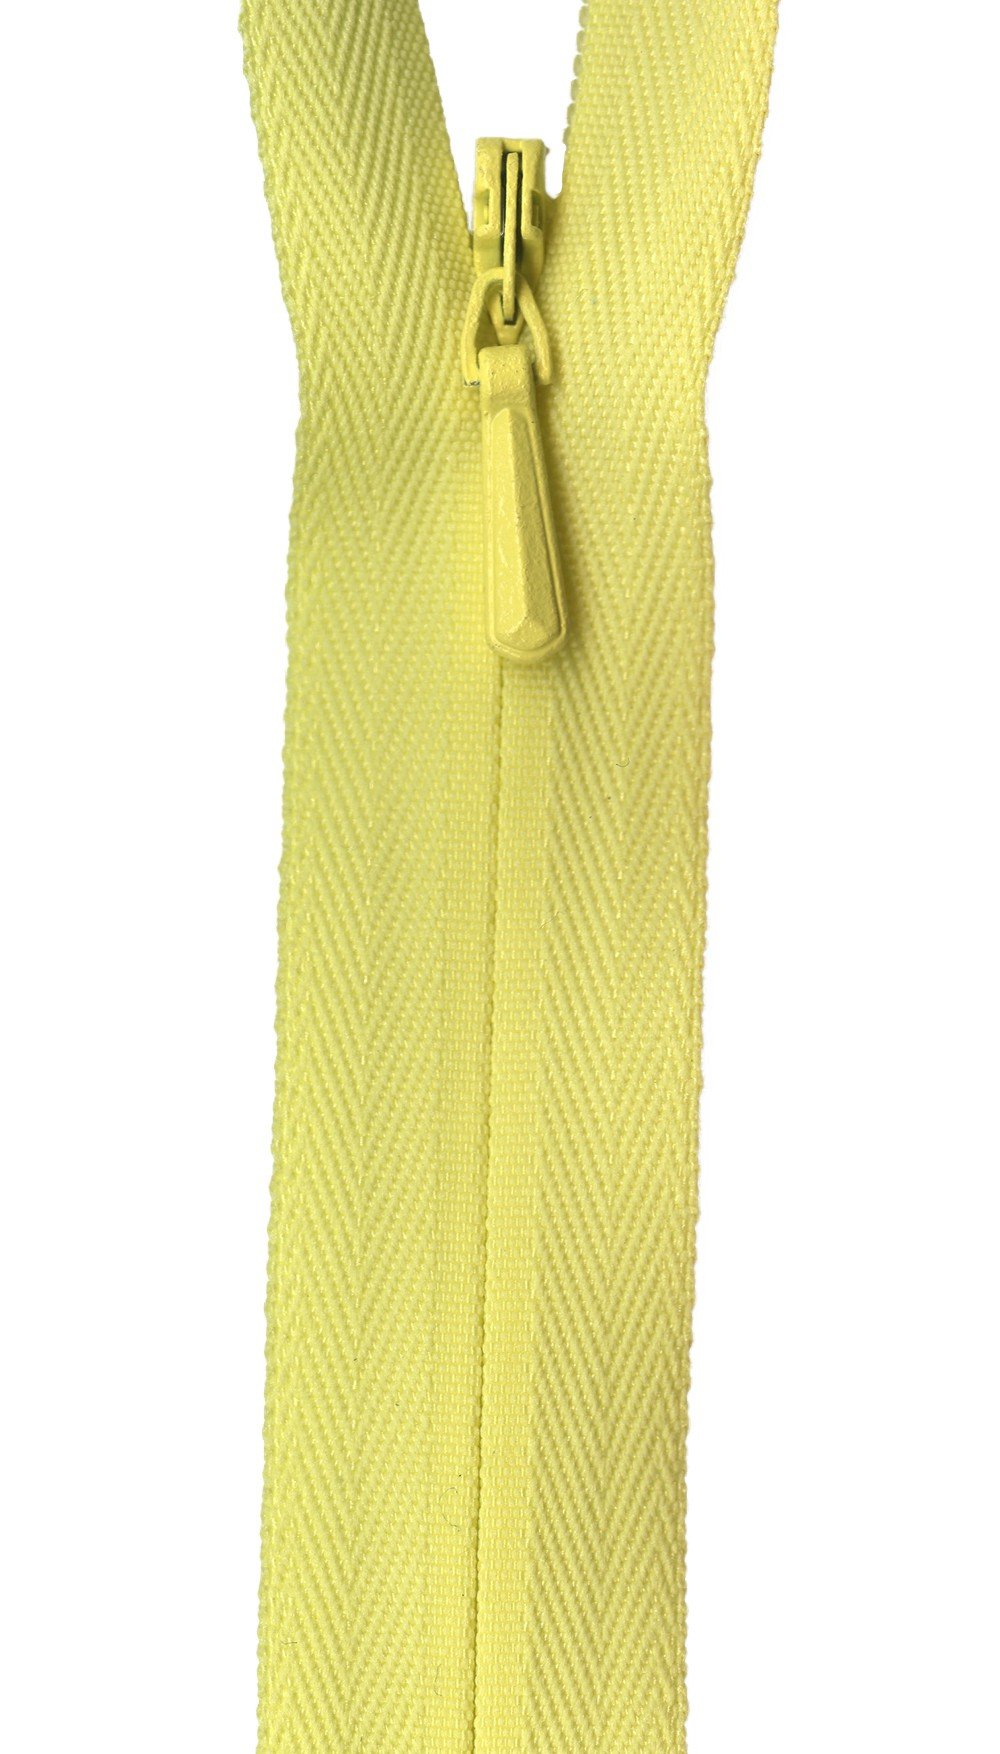 American & Efird 318-503 Unique Invisible Zipper, 18-Inch, Yellow by American & Efird